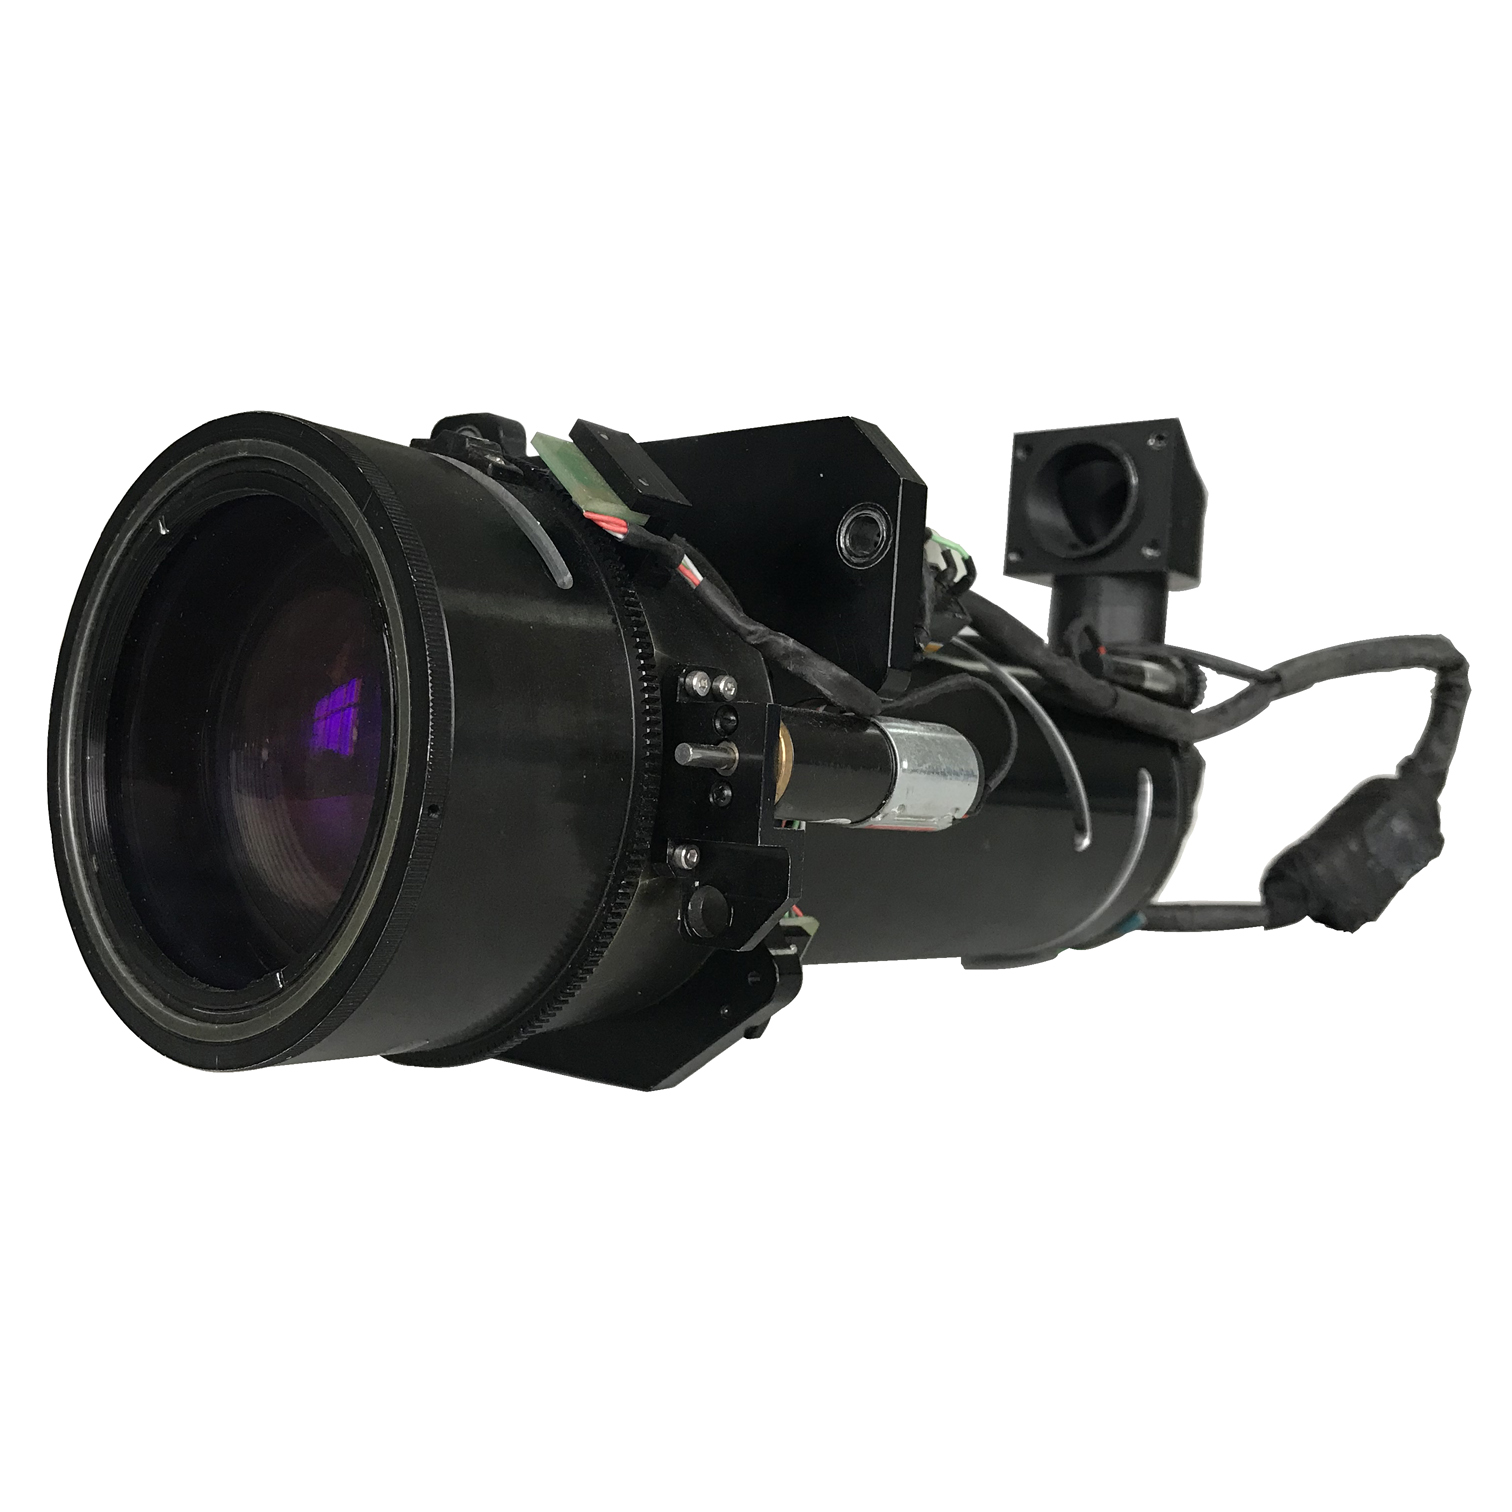 F25-500mm Zoom Lens for Visible